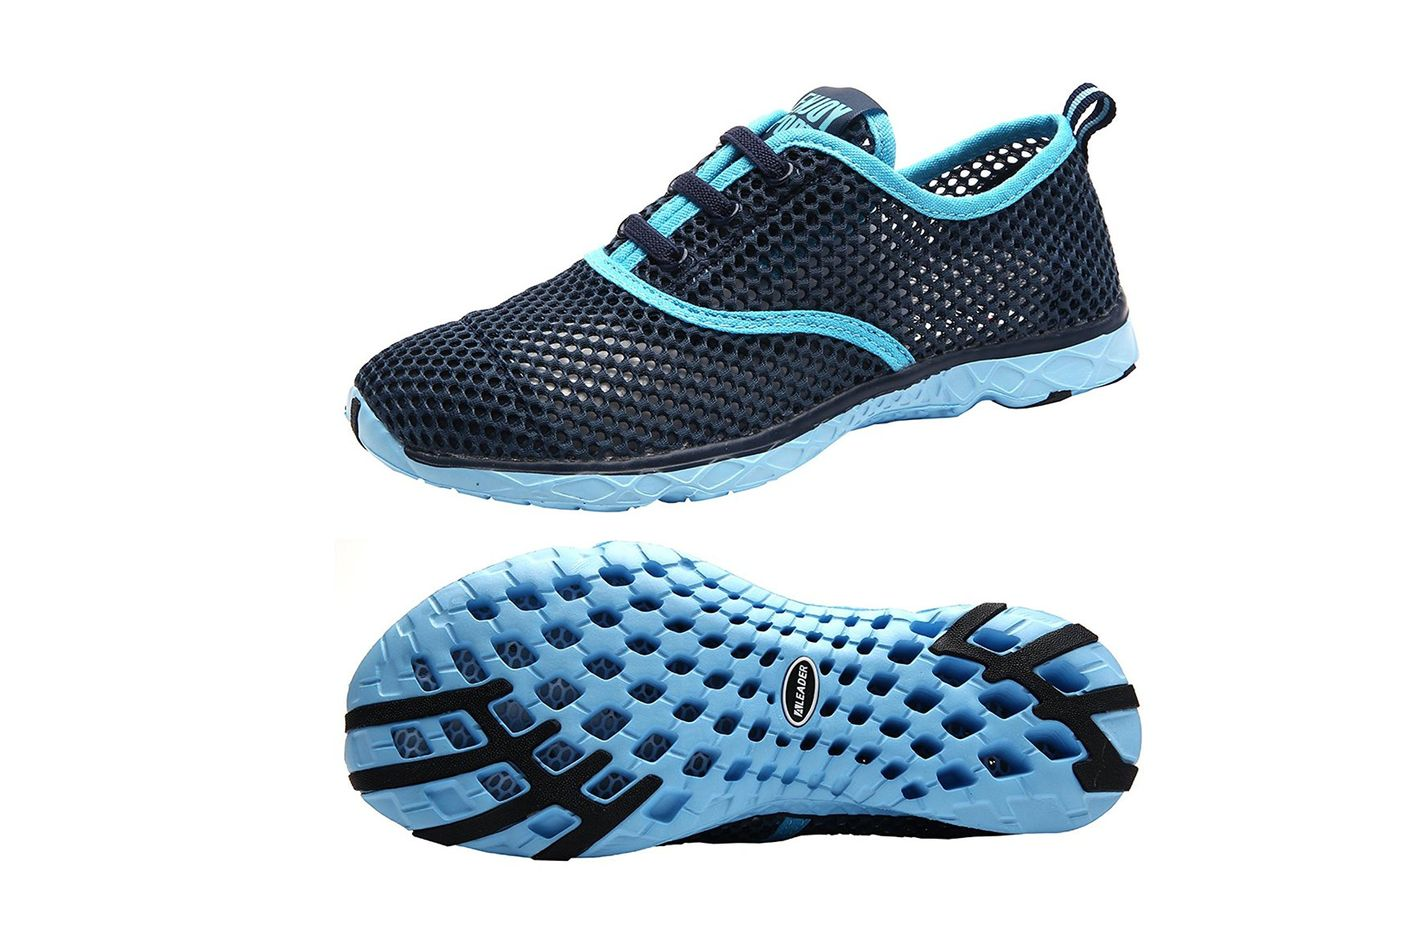 652850c4226 Aleader Women s Quick Drying Aqua Water Shoes